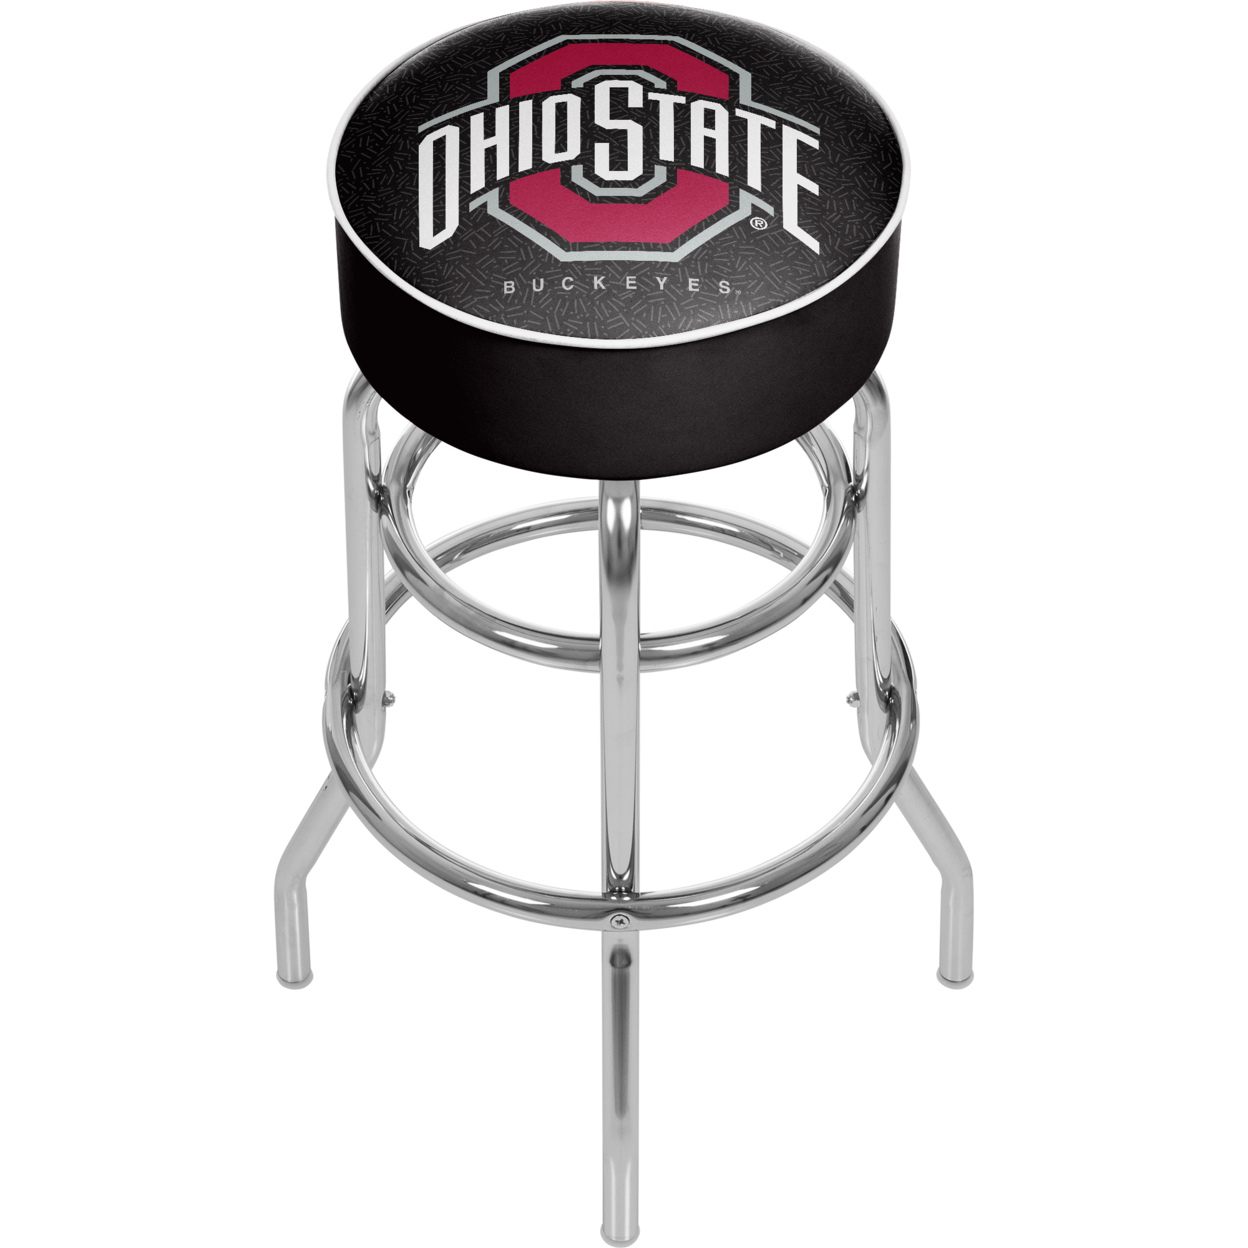 Ohio State University Logo Padded Swivel Bar Stool 30 Inches High - Black adriatica часы adriatica 3176 1111q коллекция twin